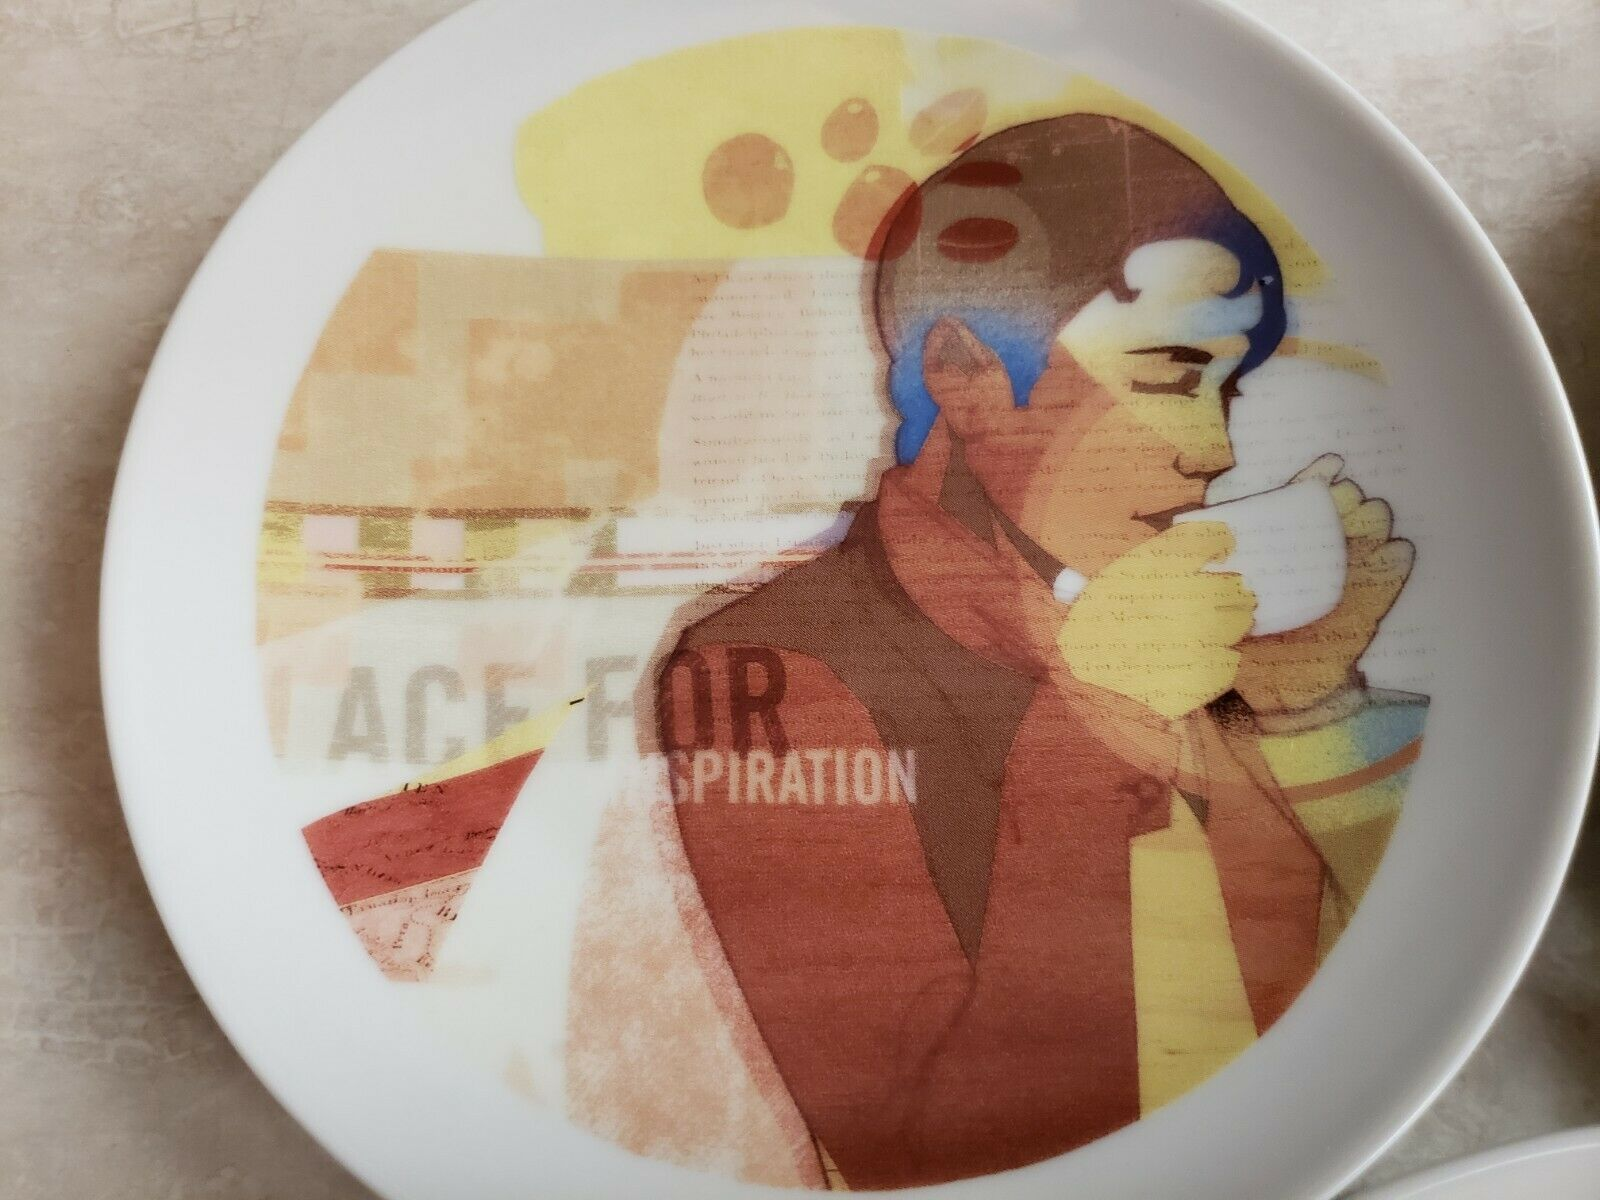 Starbucks 5 Plates North American Stores Leadership Conference 2005 In Box image 5